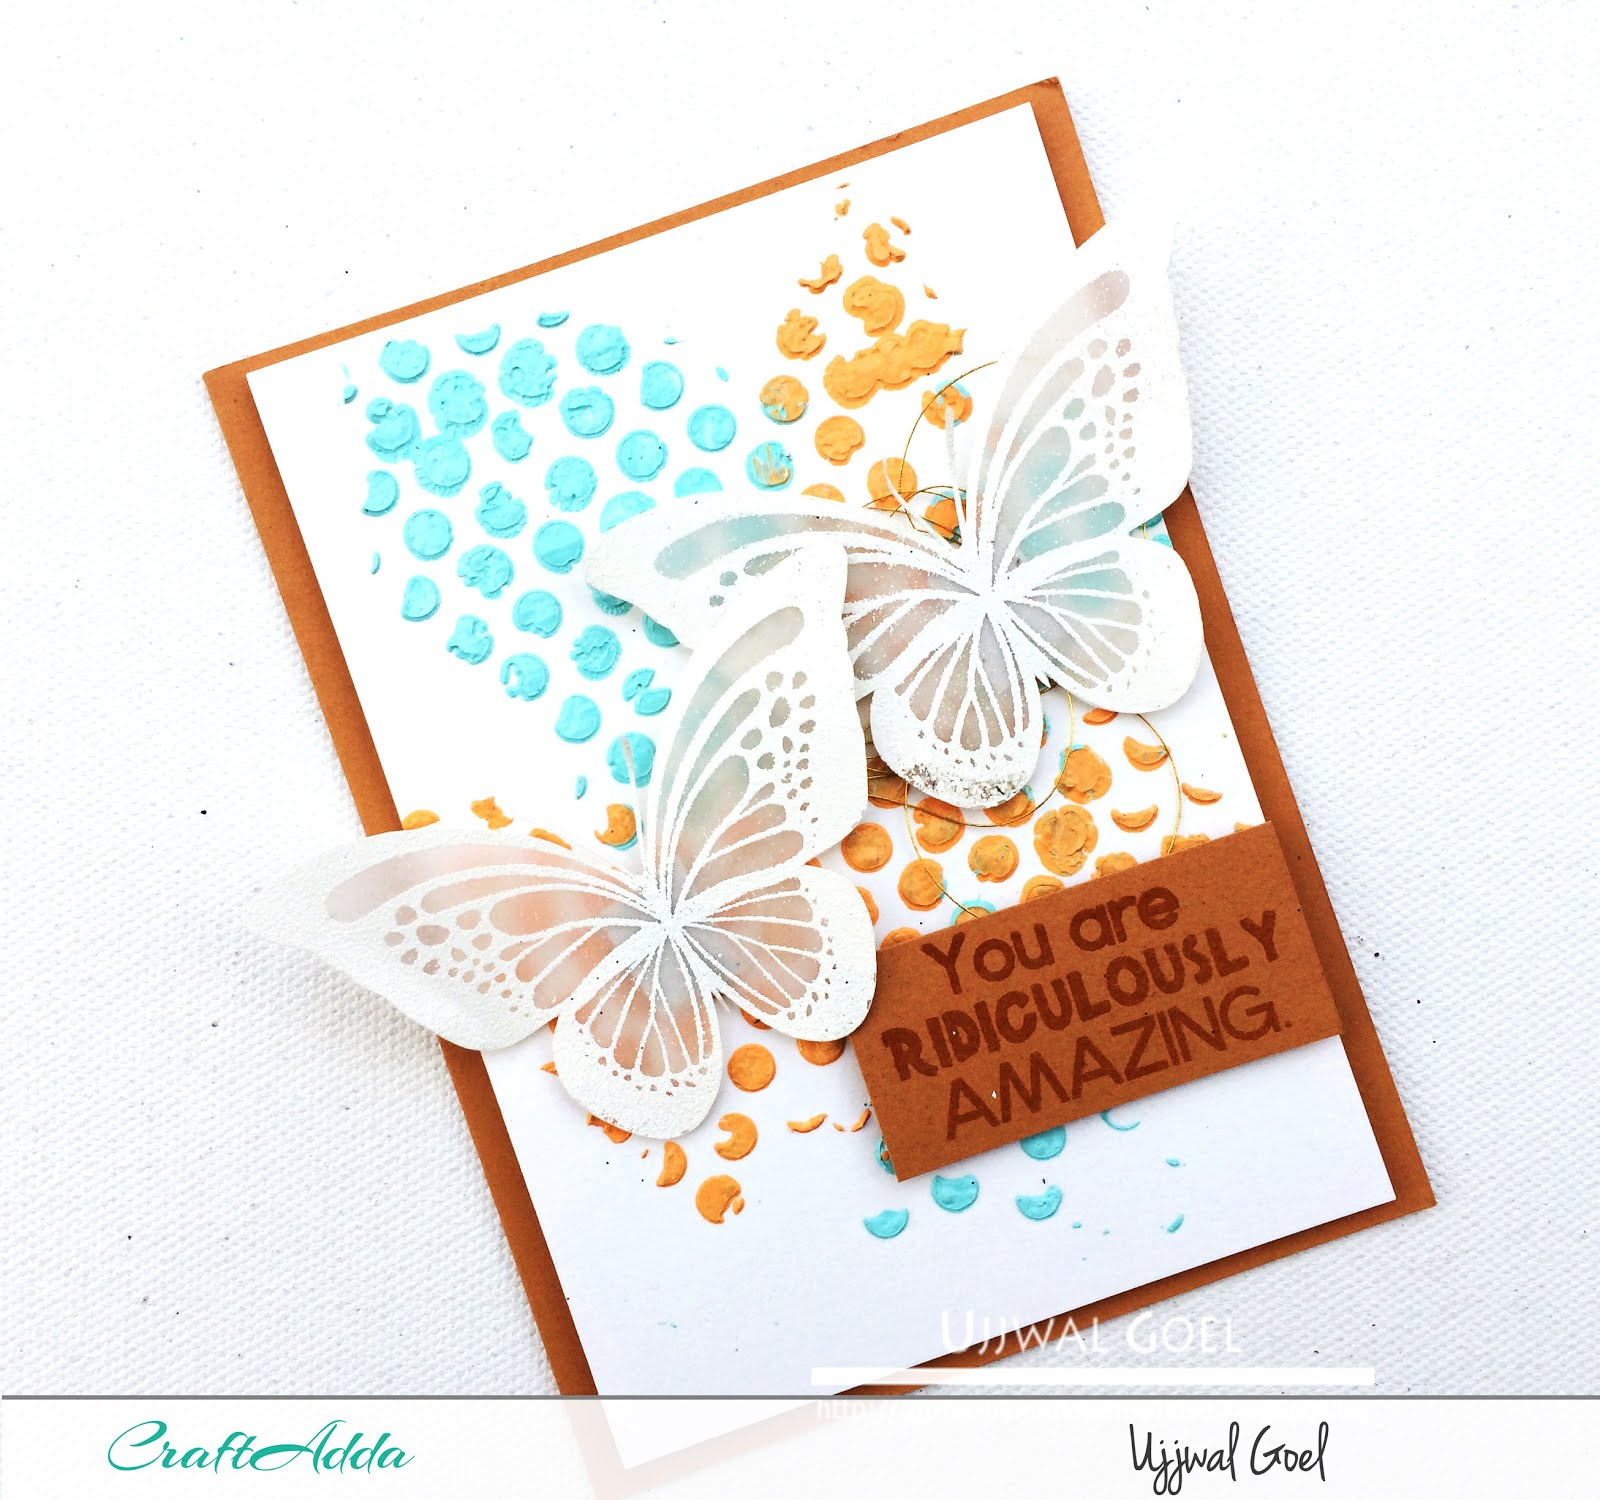 6 ways to use Stencils [Guest Post by Ujjwal] 7